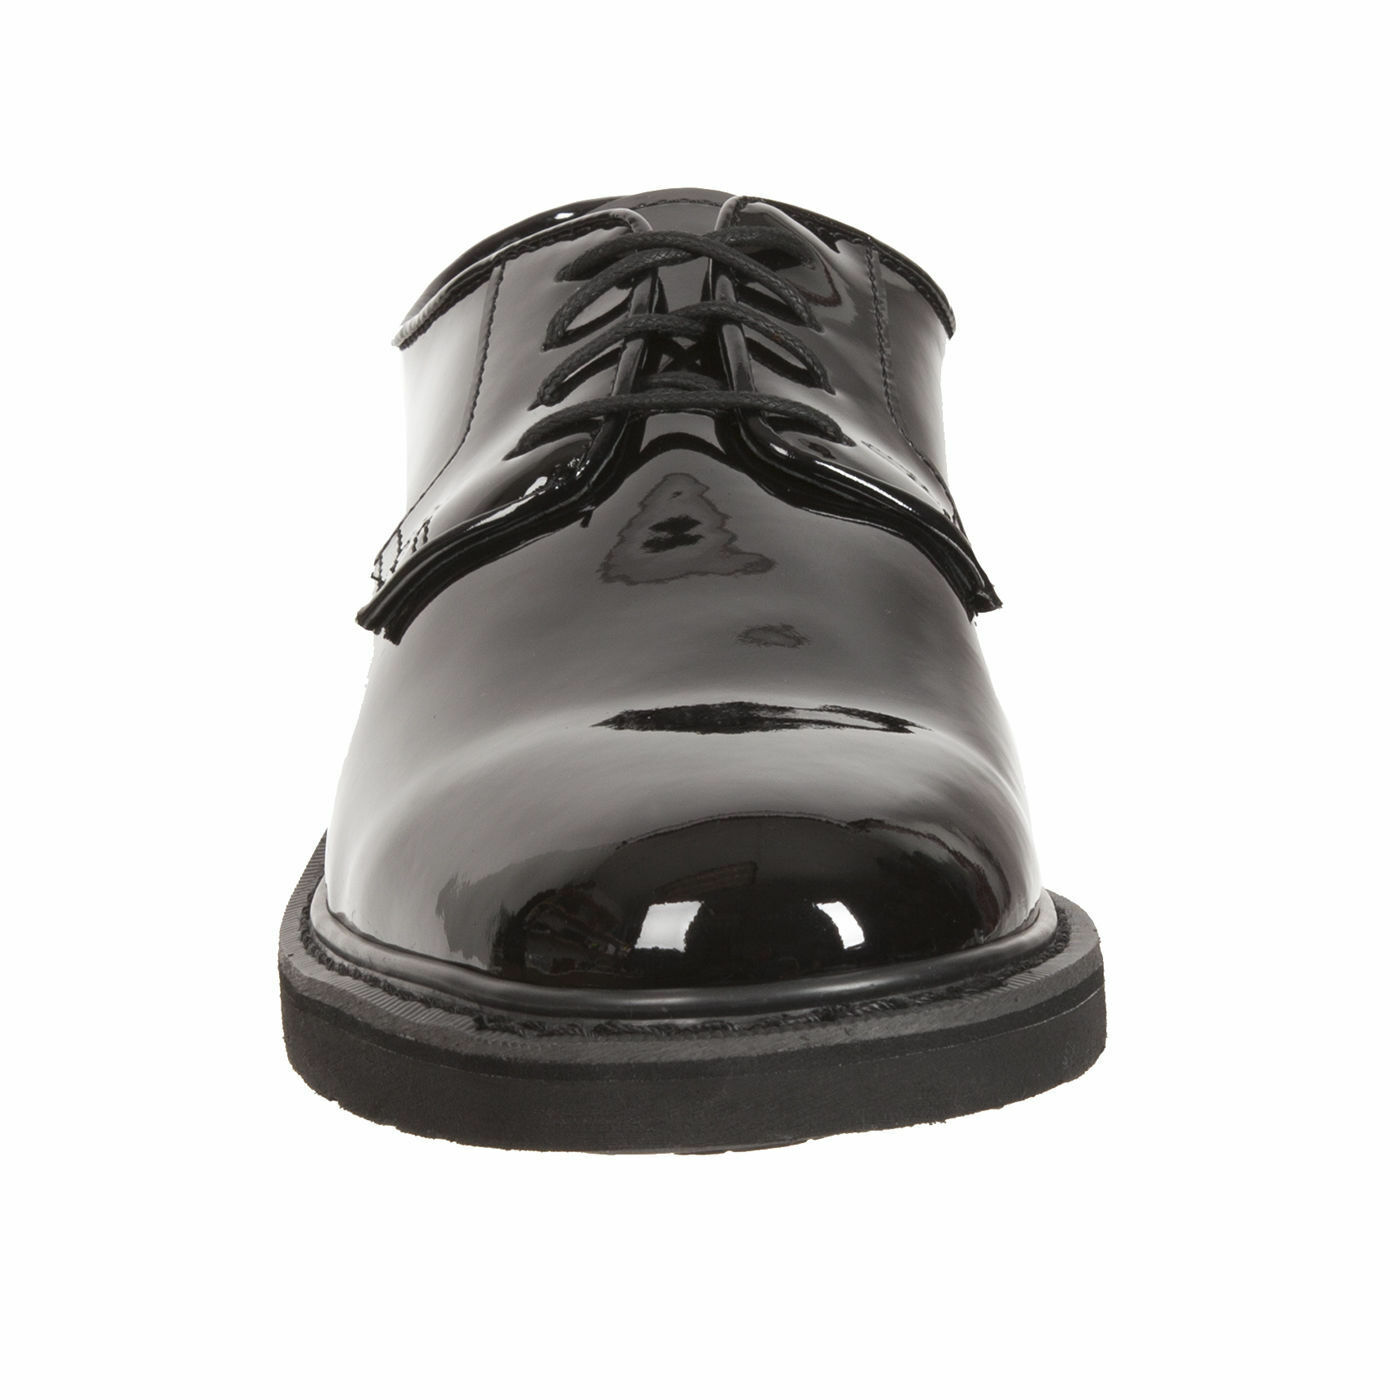 ROCKY HIGH-GLOSS DRESS DRESS DRESS LEATHER OXFORD SHOE FQ00510-8 - ALL SIZES - NEW 128bd3